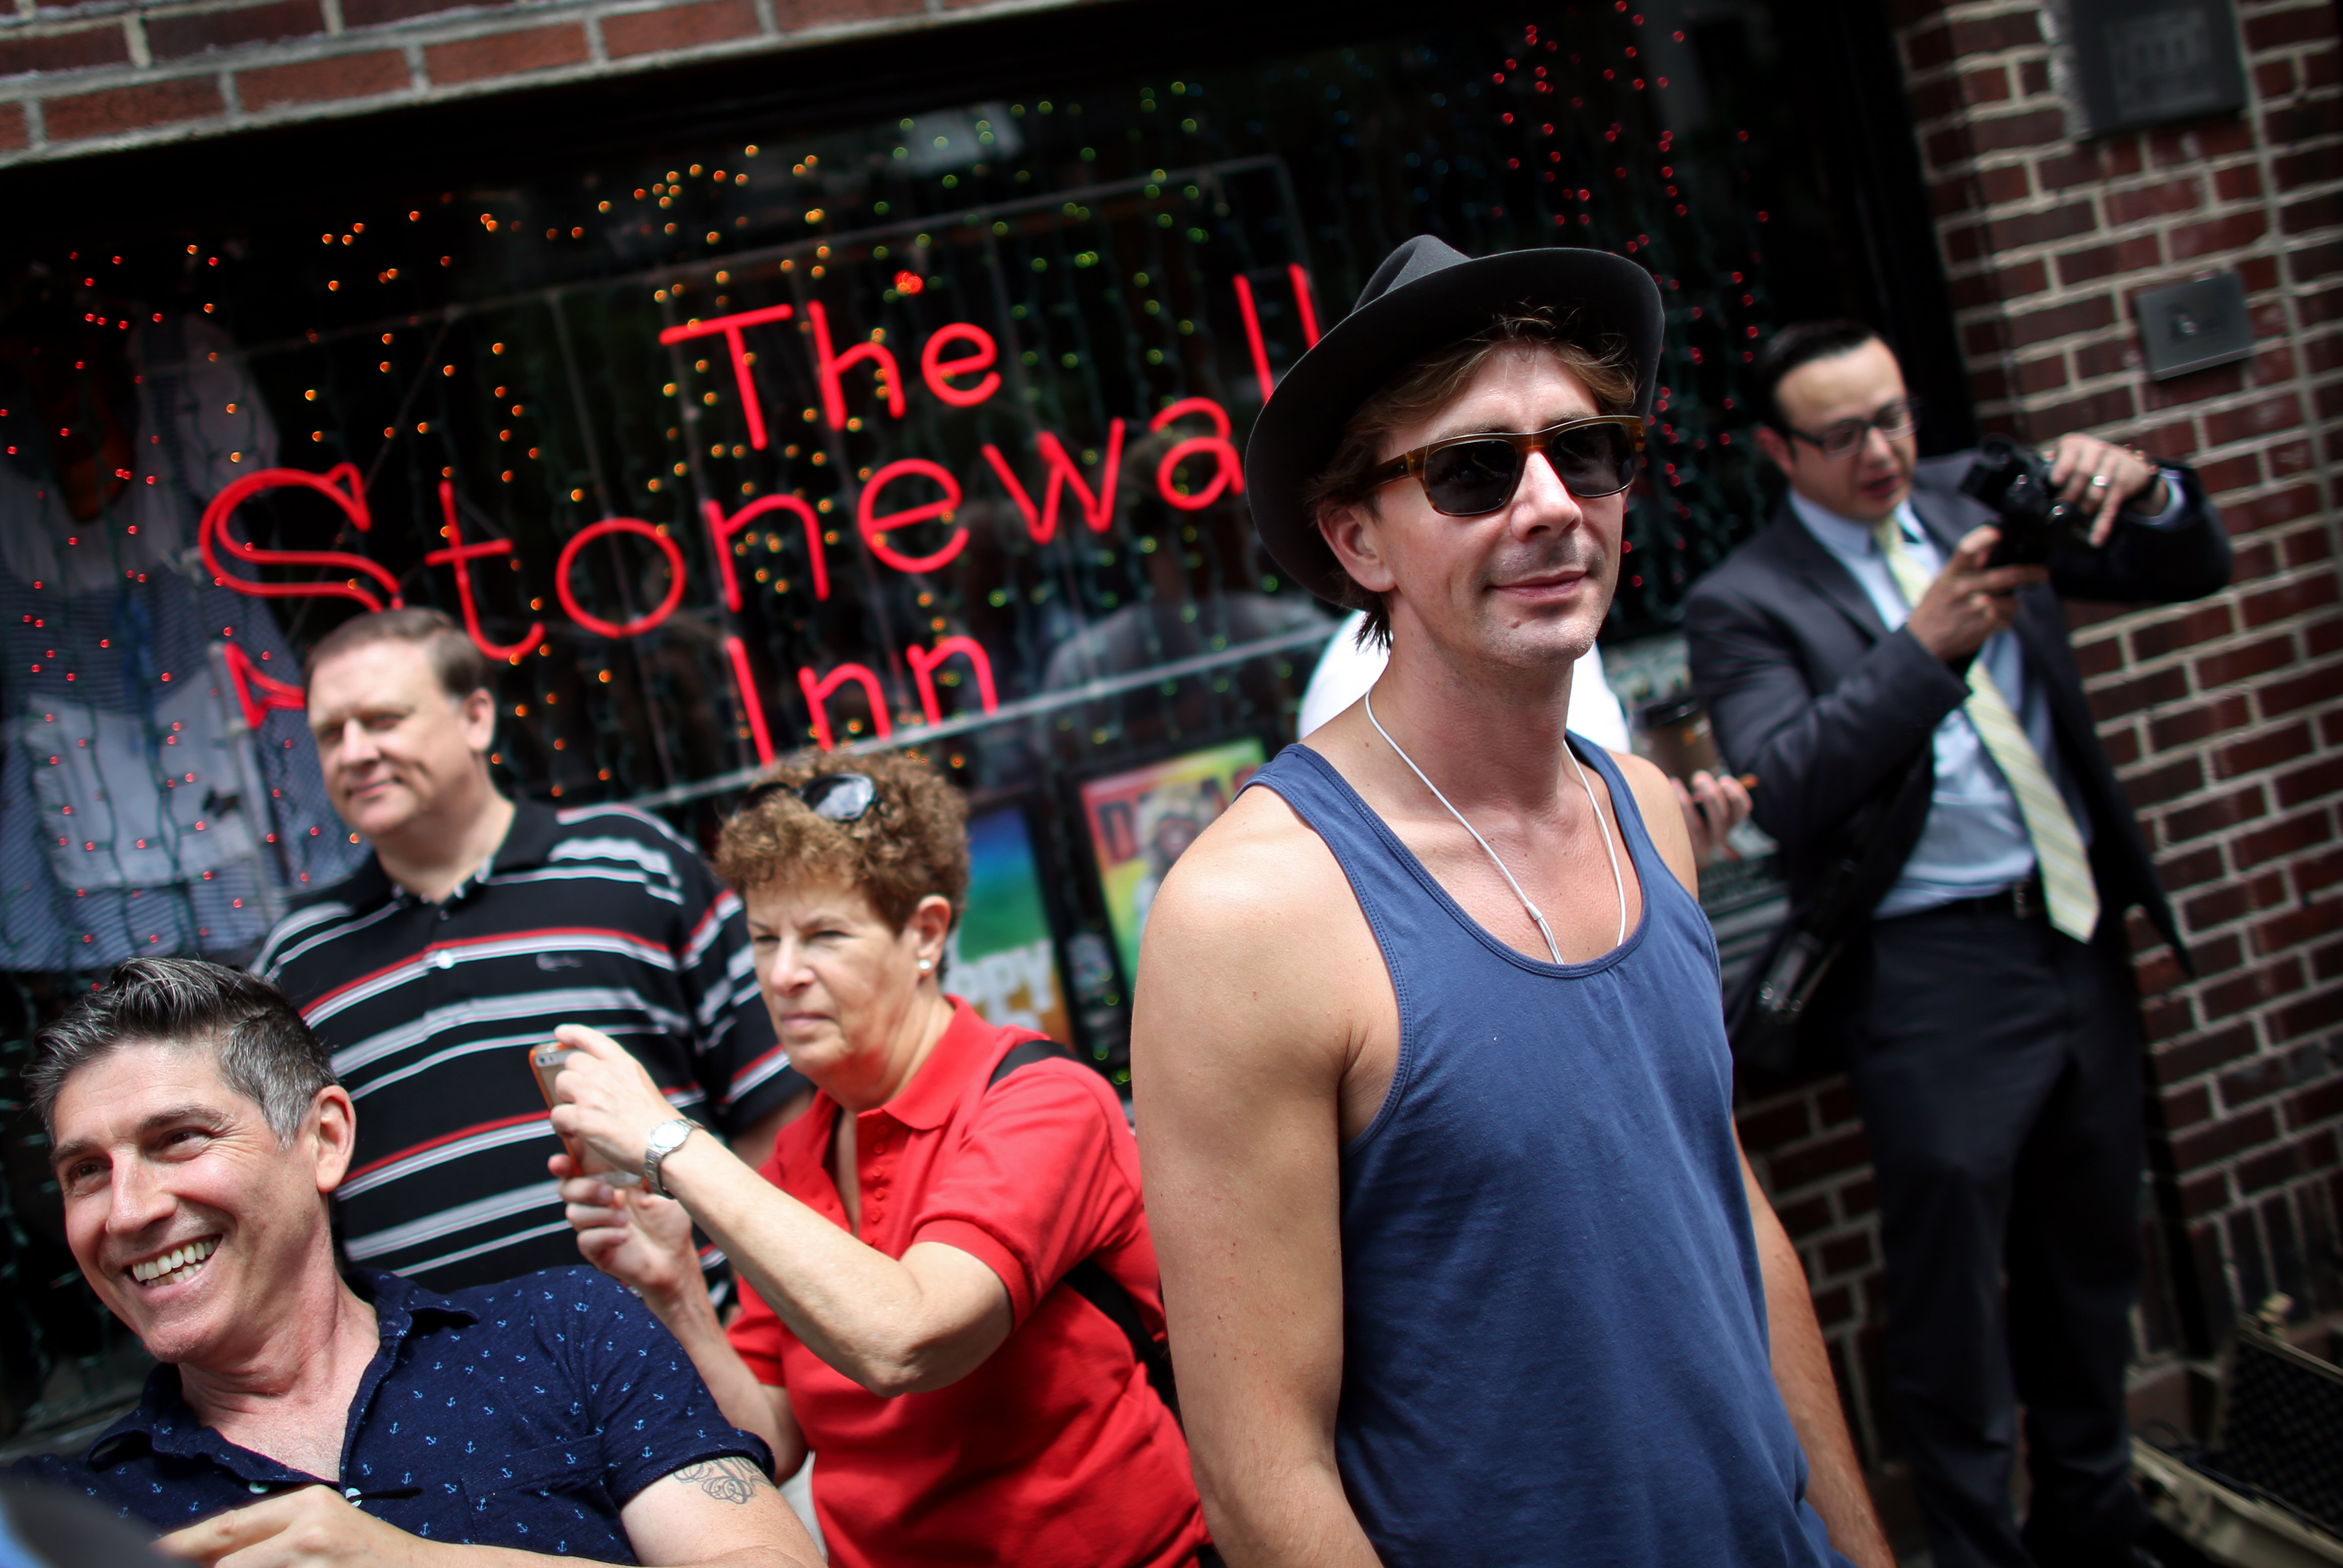 People gather outside of the Stonewall Inn, an iconic gay bar recently granted historic landmark status, on June 26, 2015 in the West Village neighborhood in New York City.